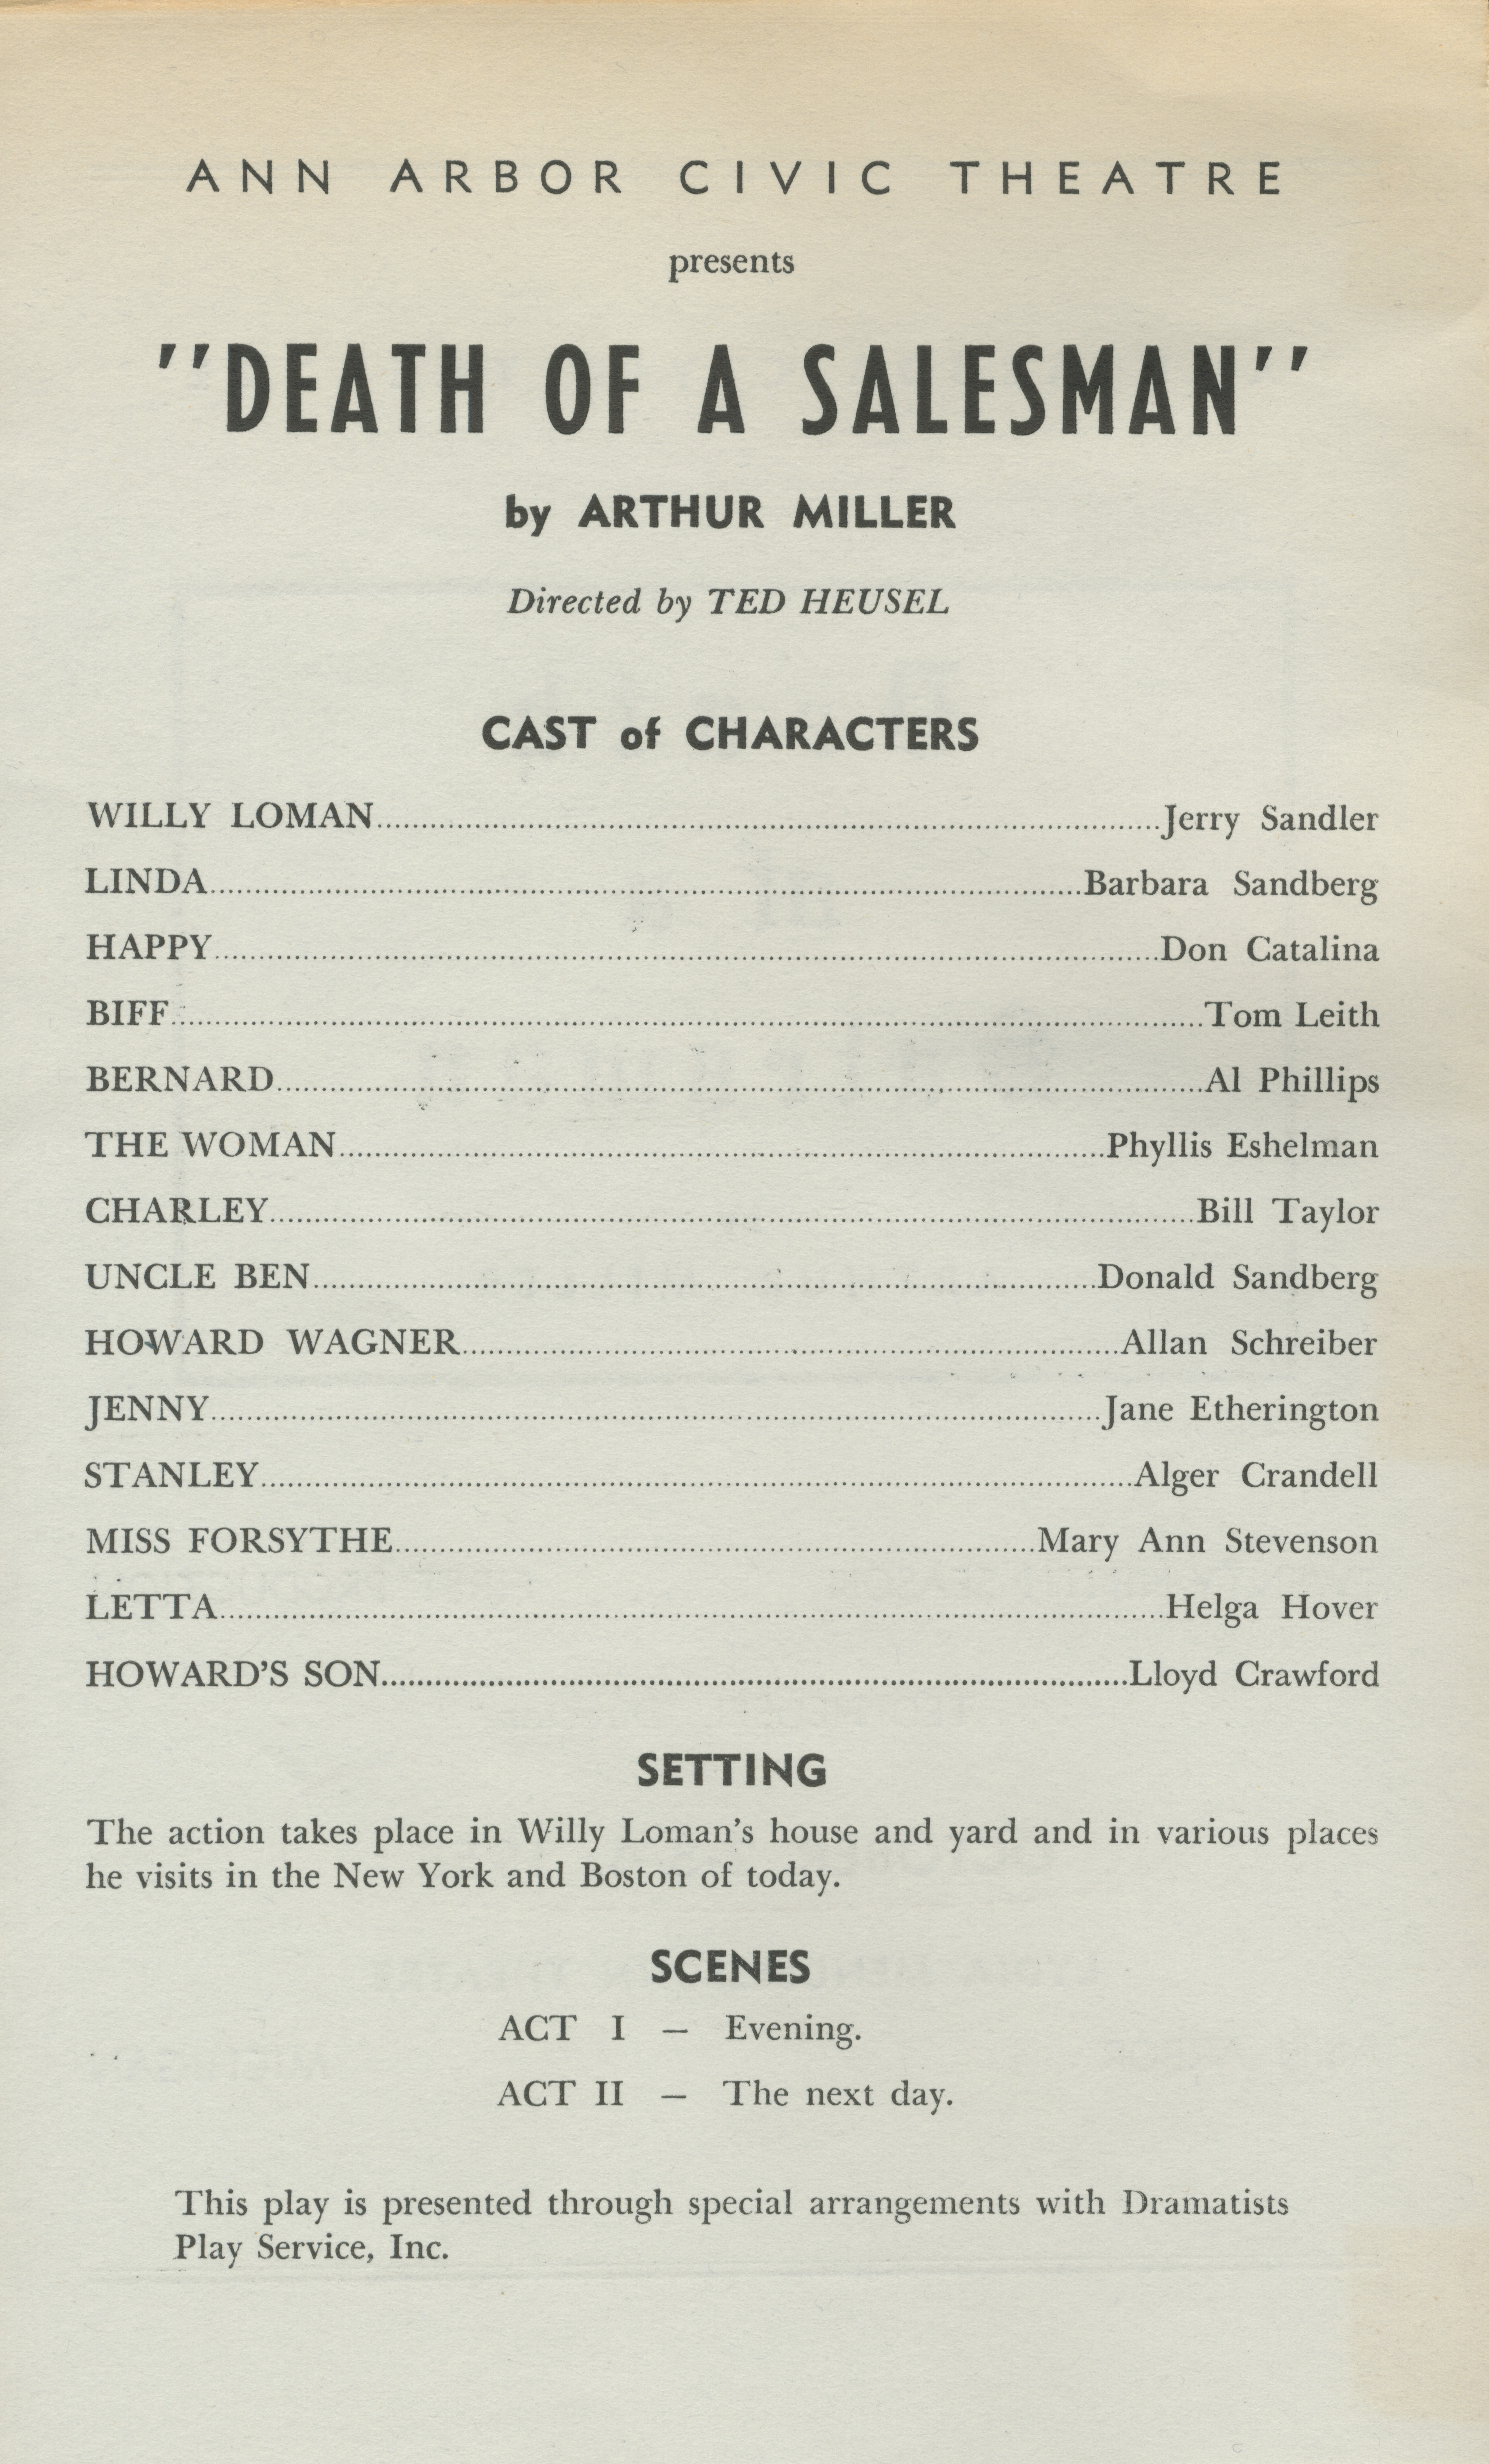 characterization of willy loman in arthur millers death of a salesman